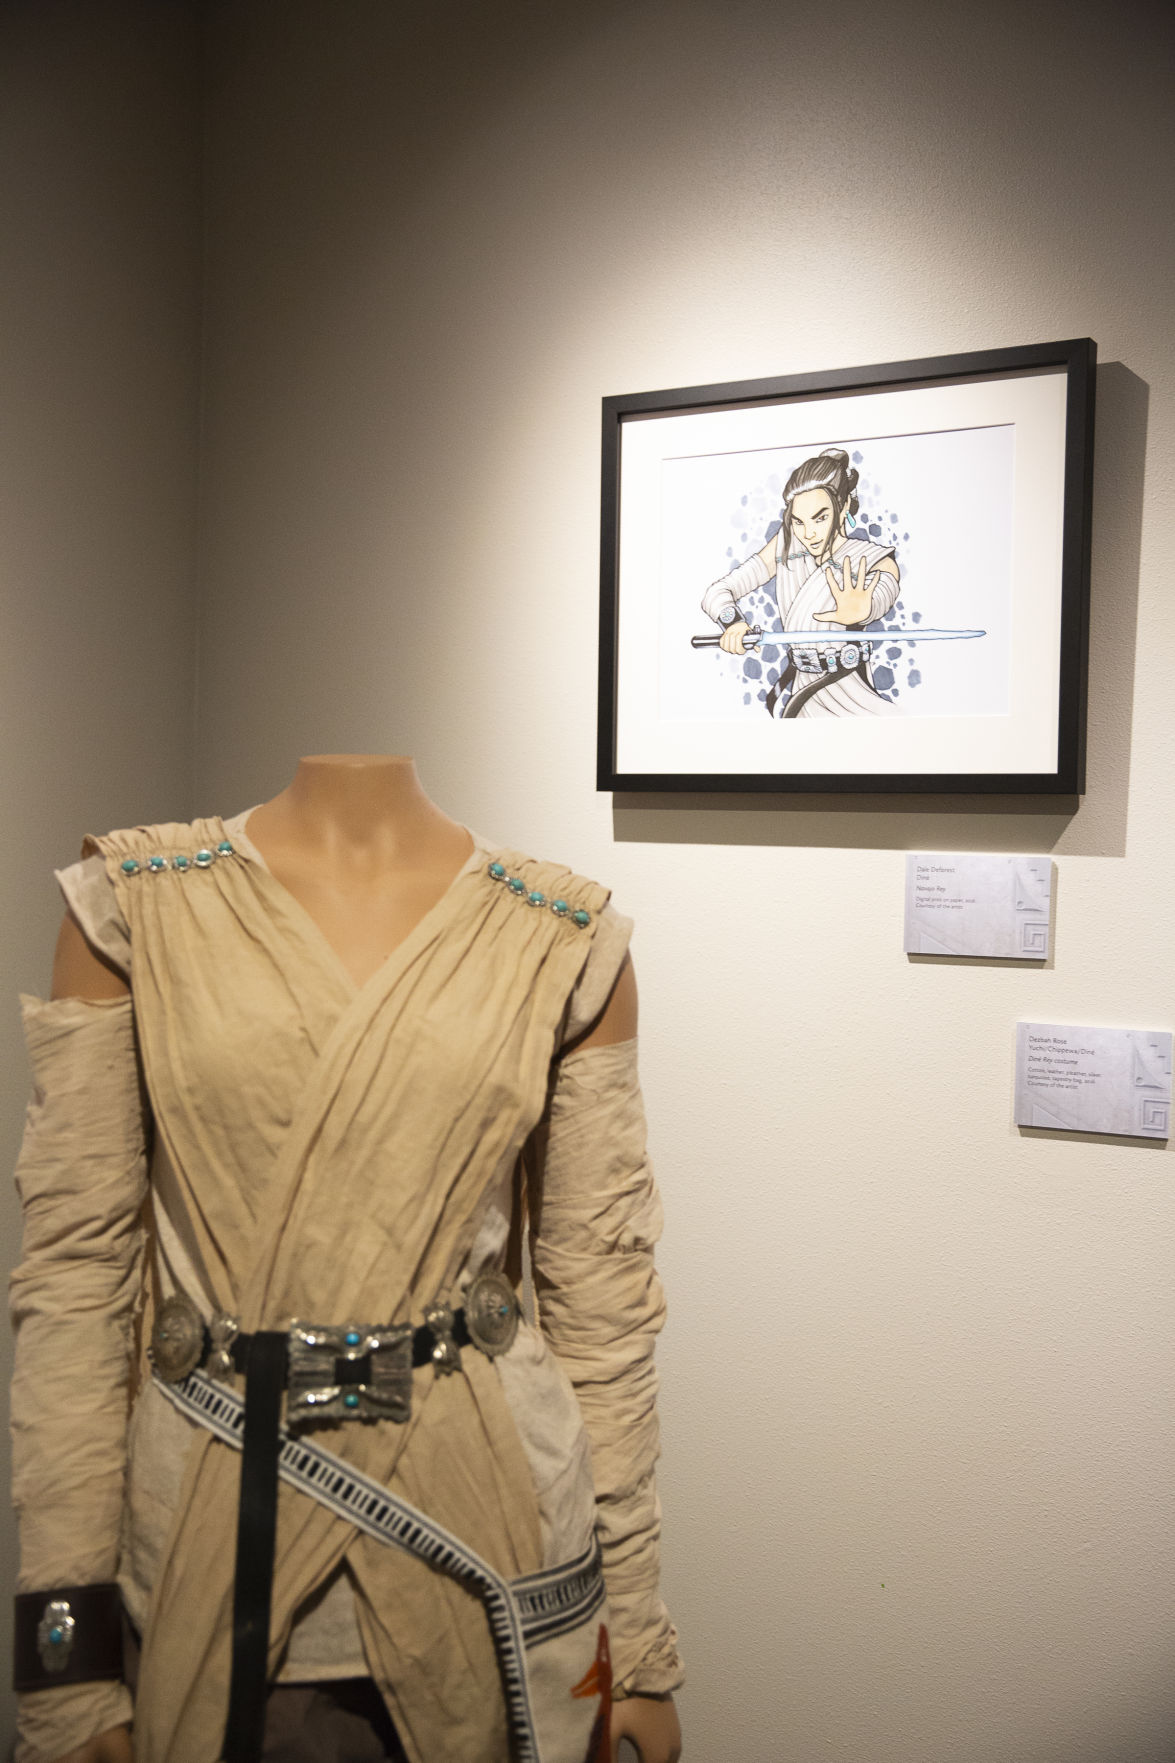 Feel the Force in Flagstaff with an Indigenous art exhibit